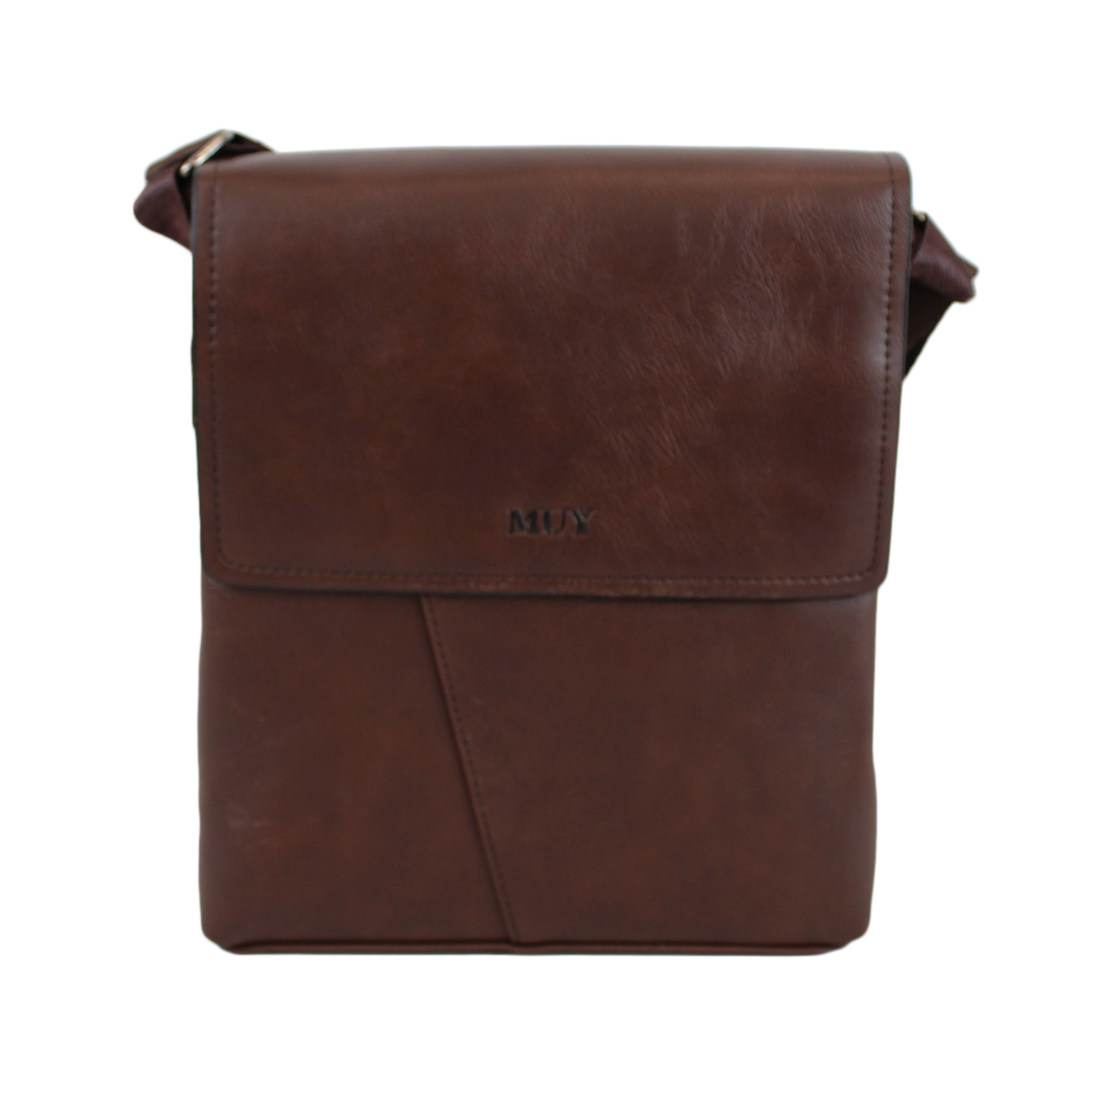 Plain real leather cross body bag